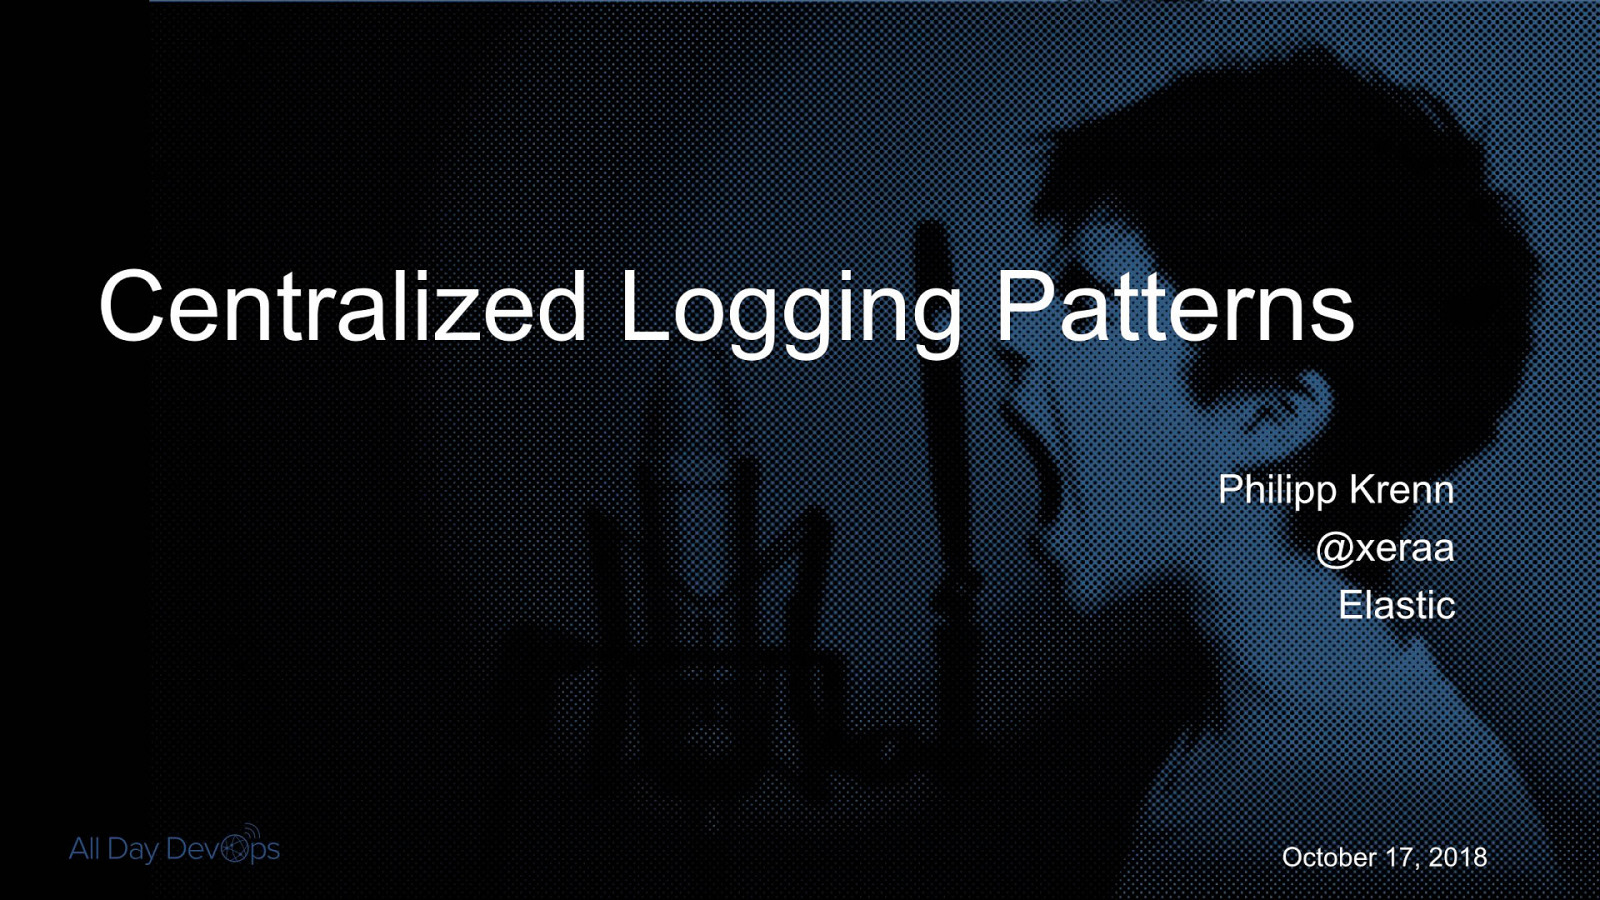 Centralized Logging Patterns